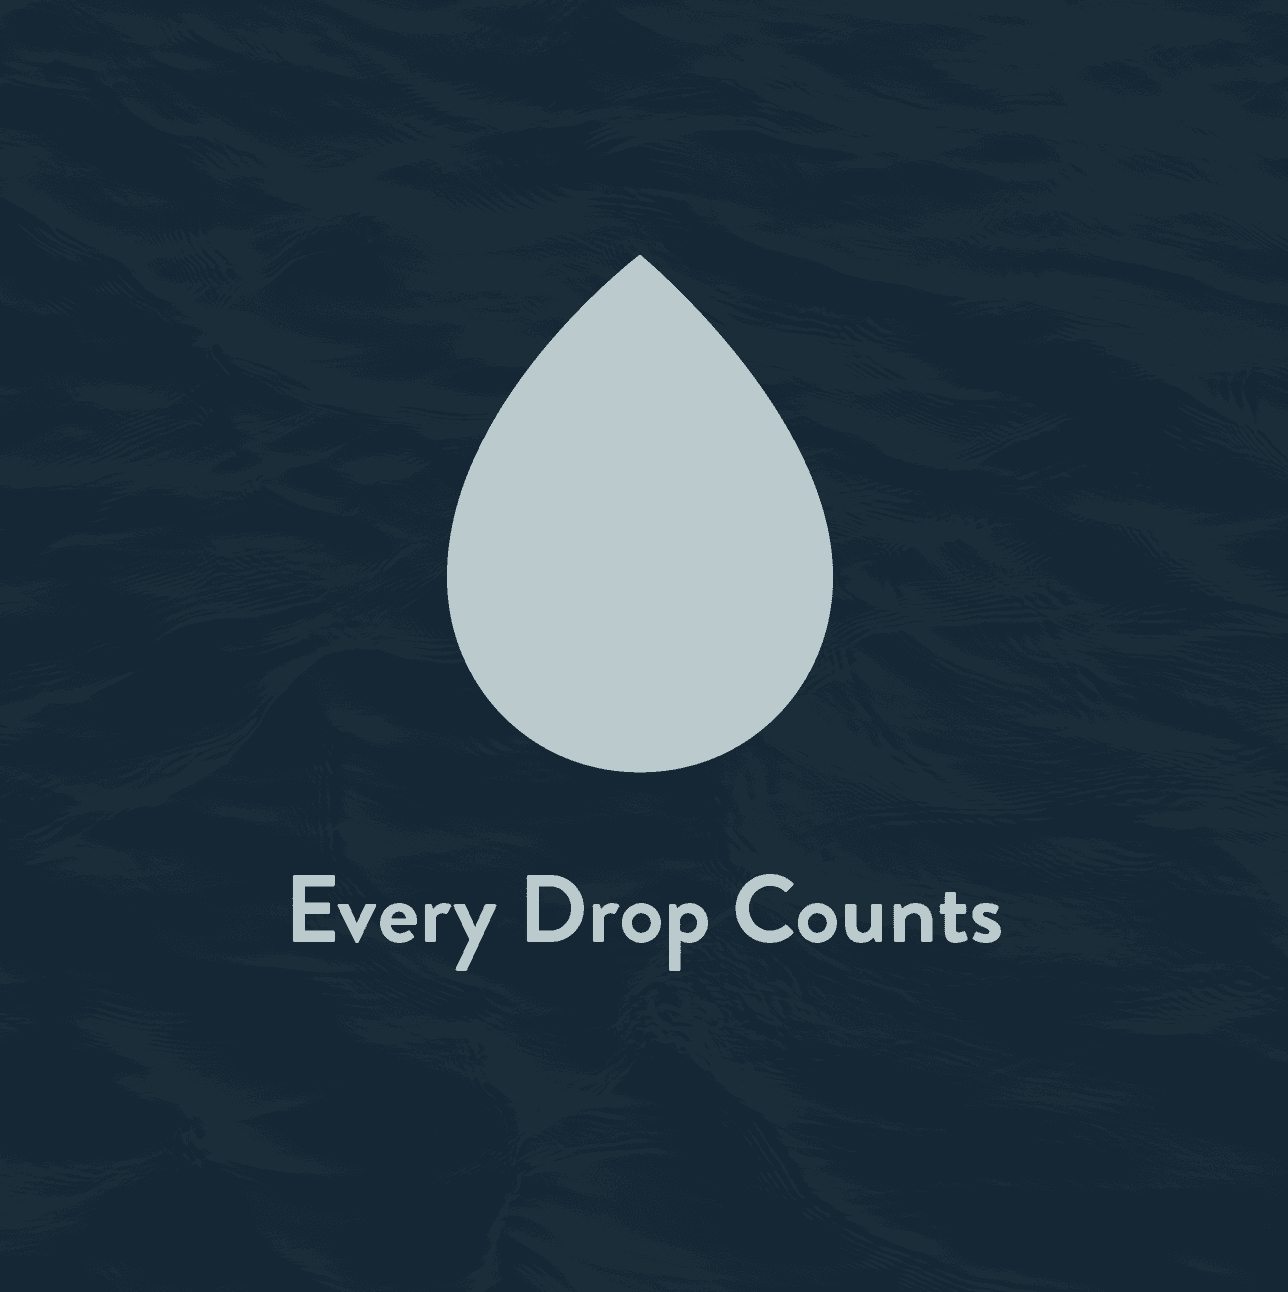 Every drop counts in text with a water drop graphic over an image of rippling water.